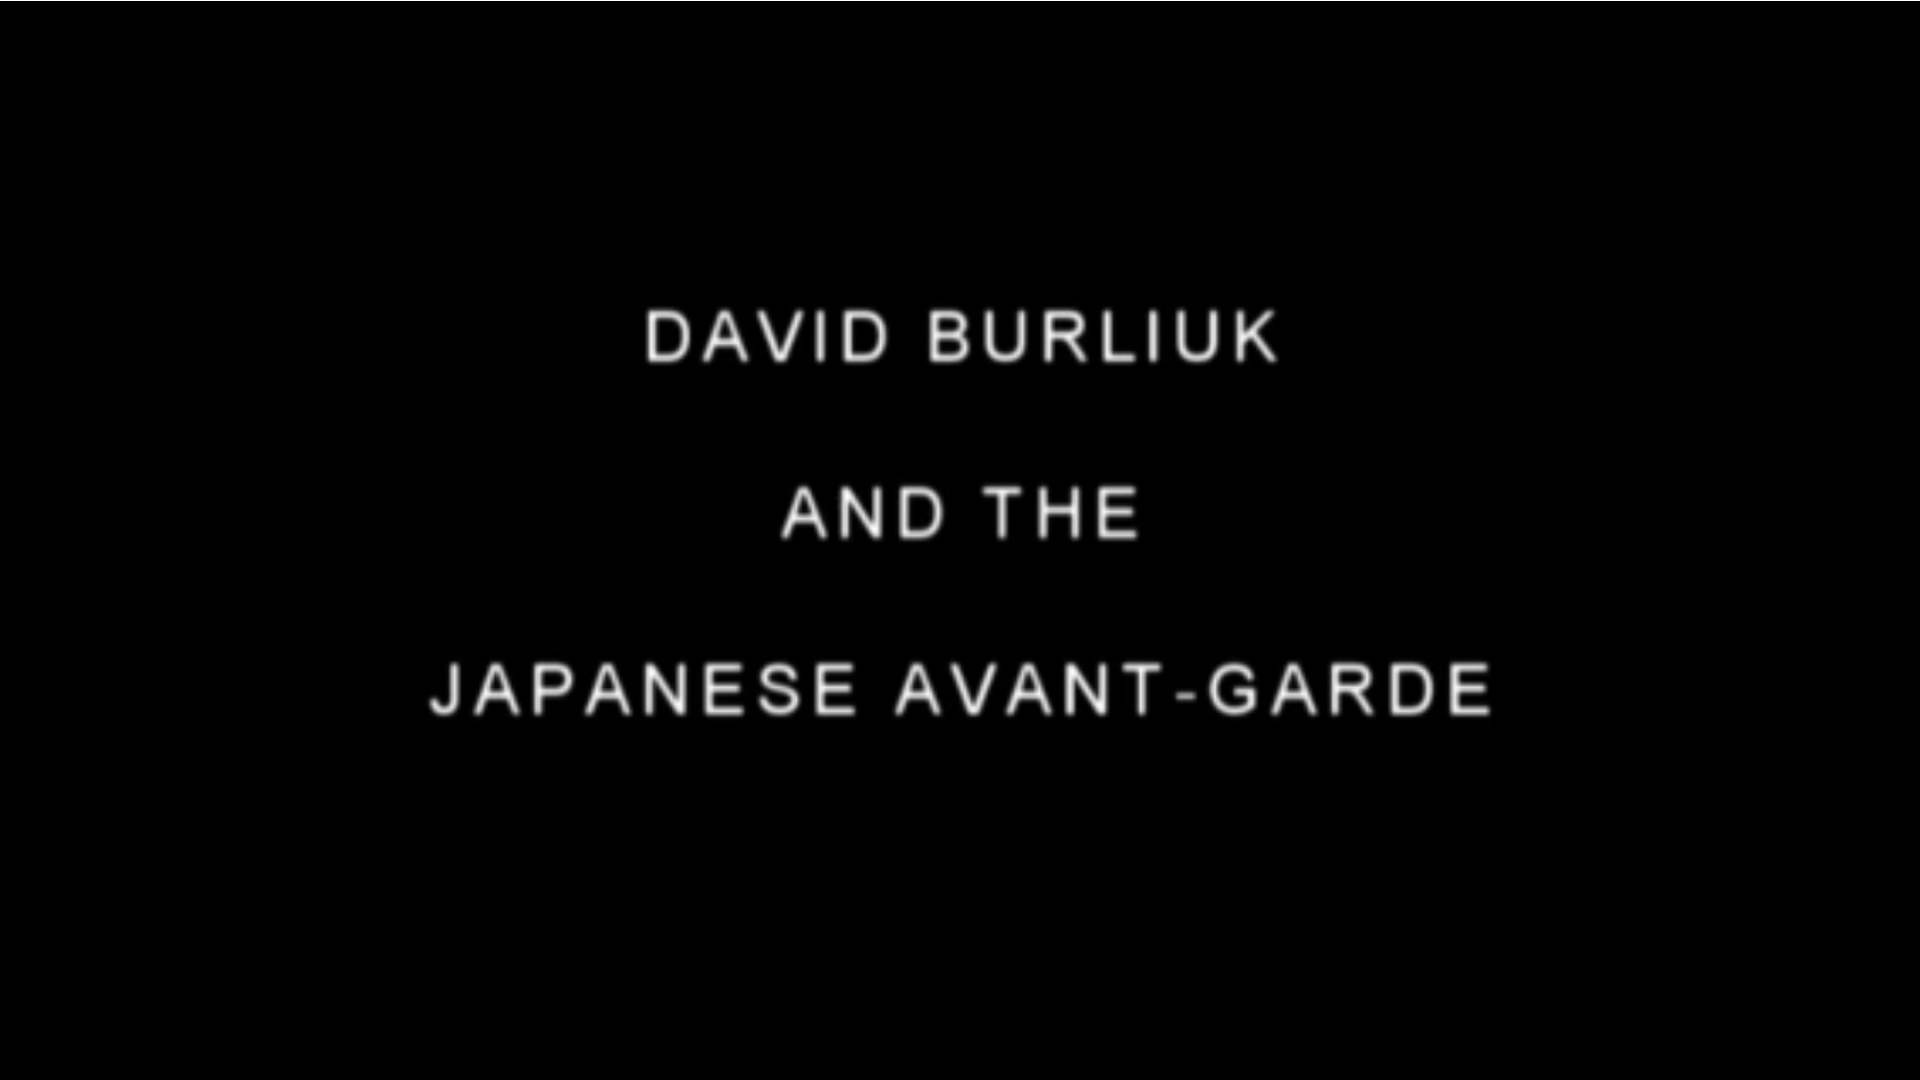 Watch Full Movie - David Burliuk and the Japanese Avant-garde